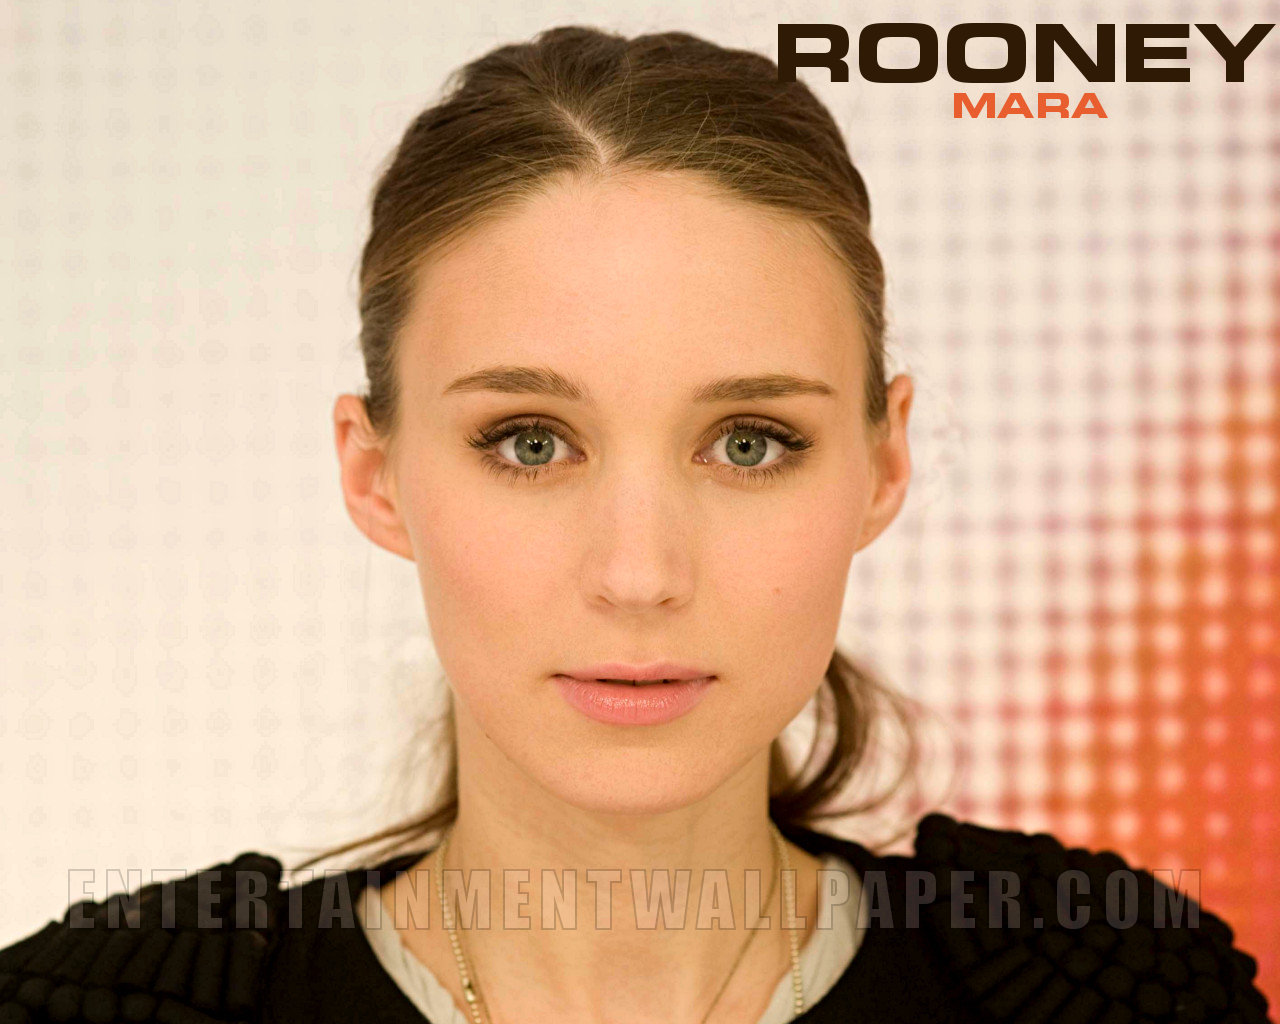 Mara: Rooney Mara Wallpaper (28708610)